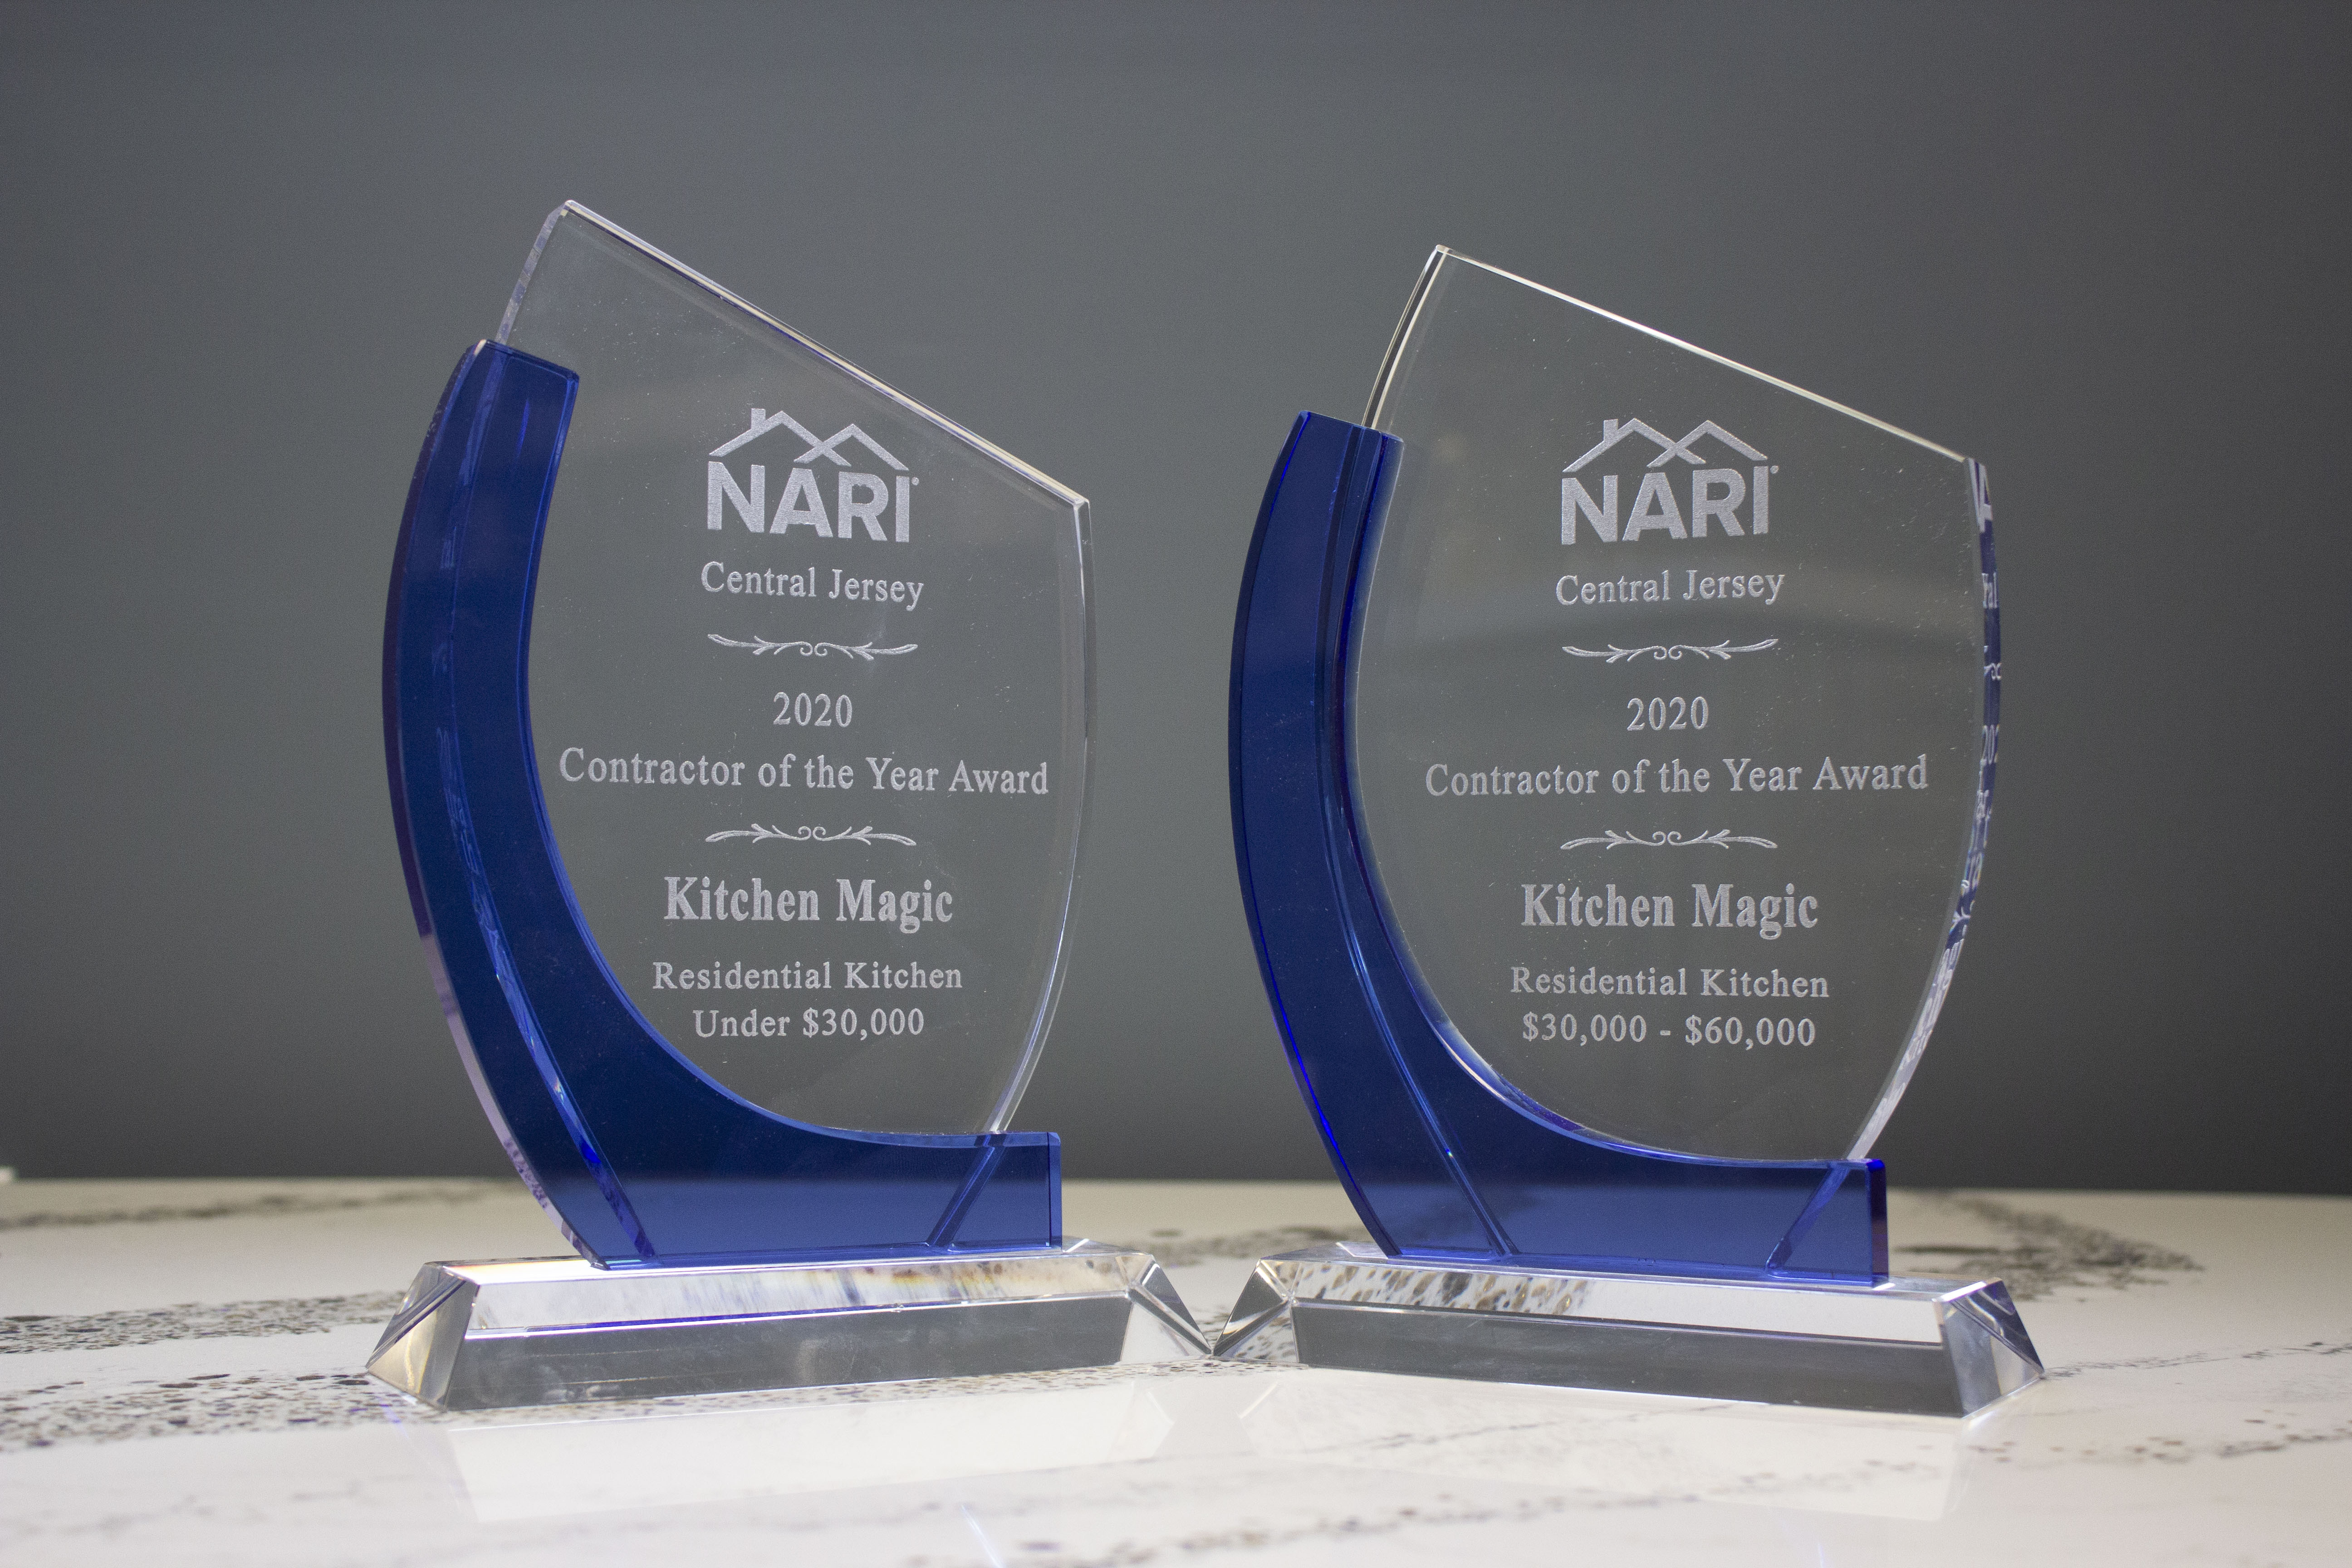 Kitchen Magic Recognized at NARI Awards for Exceptional Work on Two Remodeling Projects